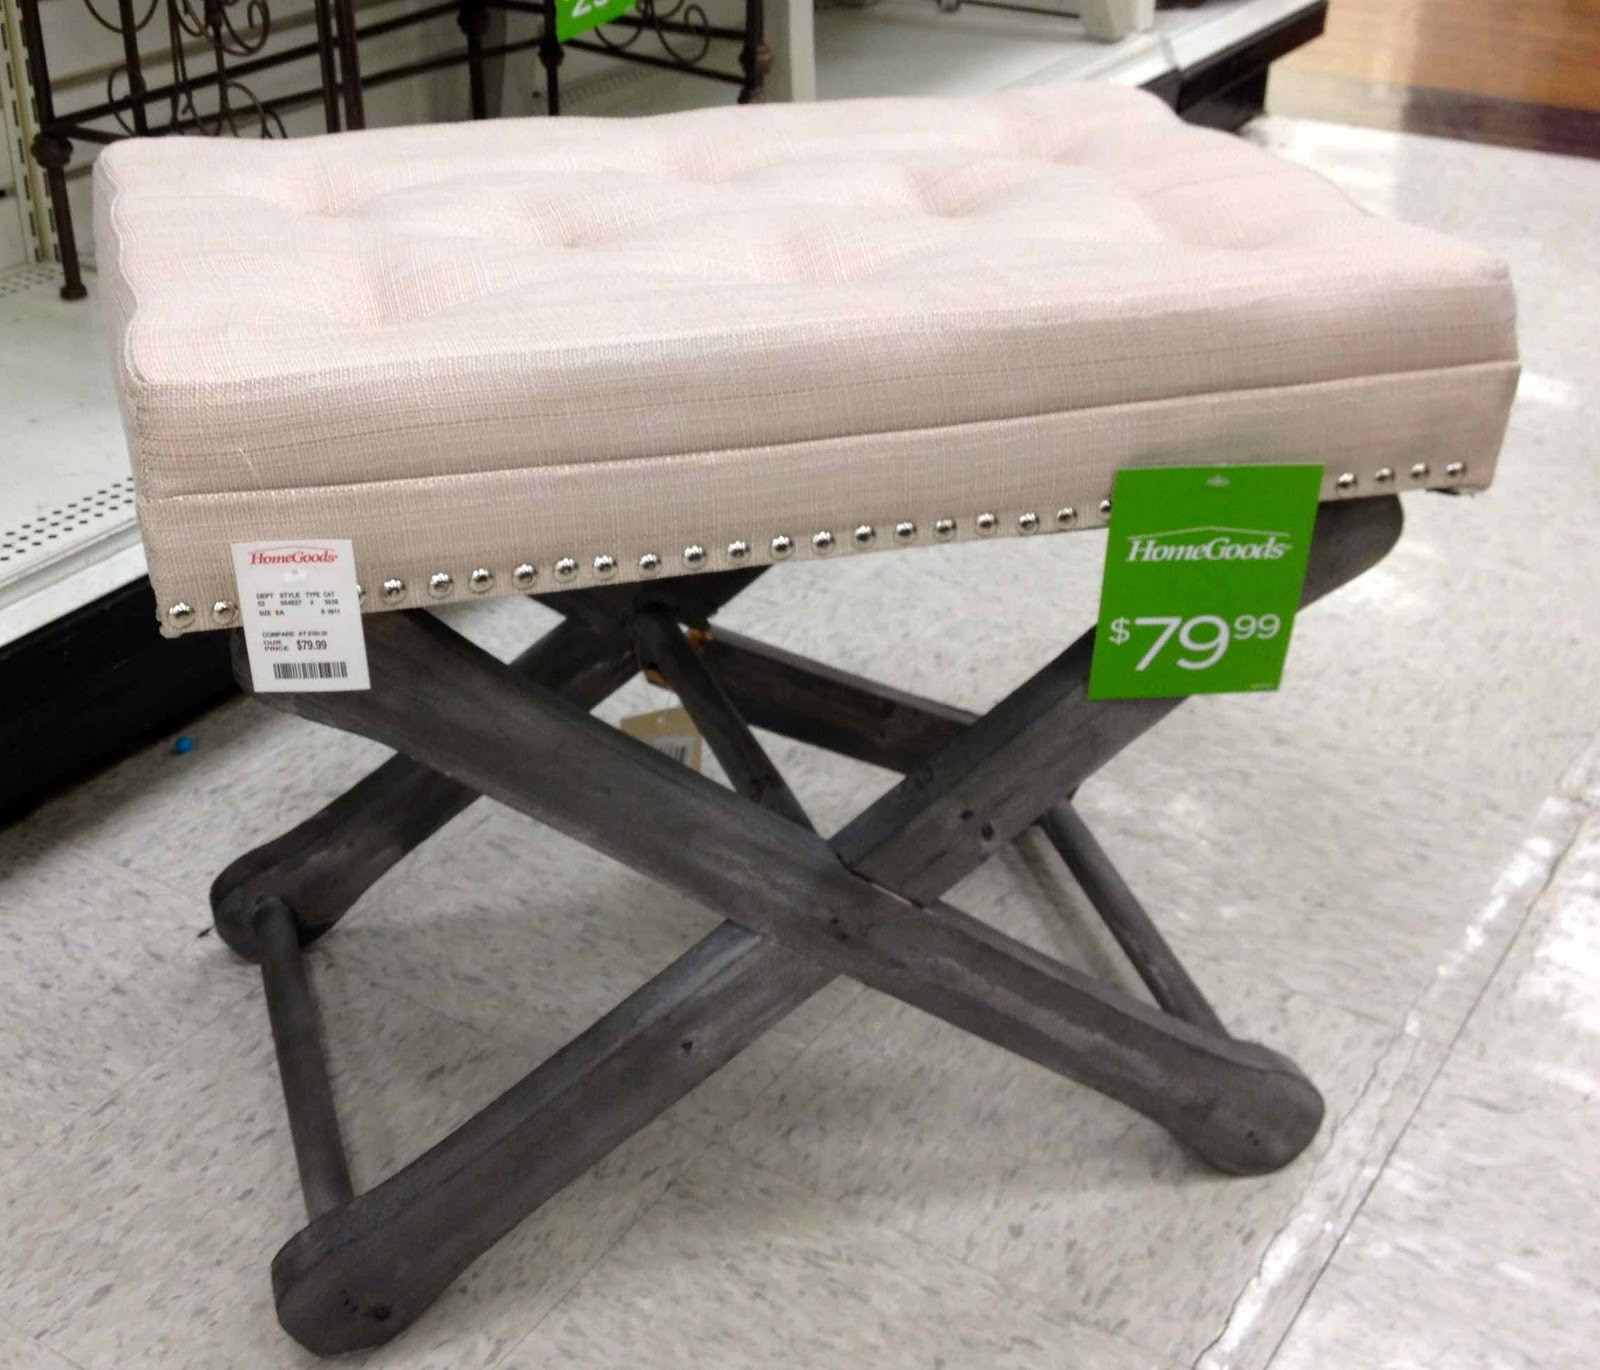 Home Goods & X-Benches: Where to Use Them u0026 Where to Buy Them | Driven by Decor islam-shia.org